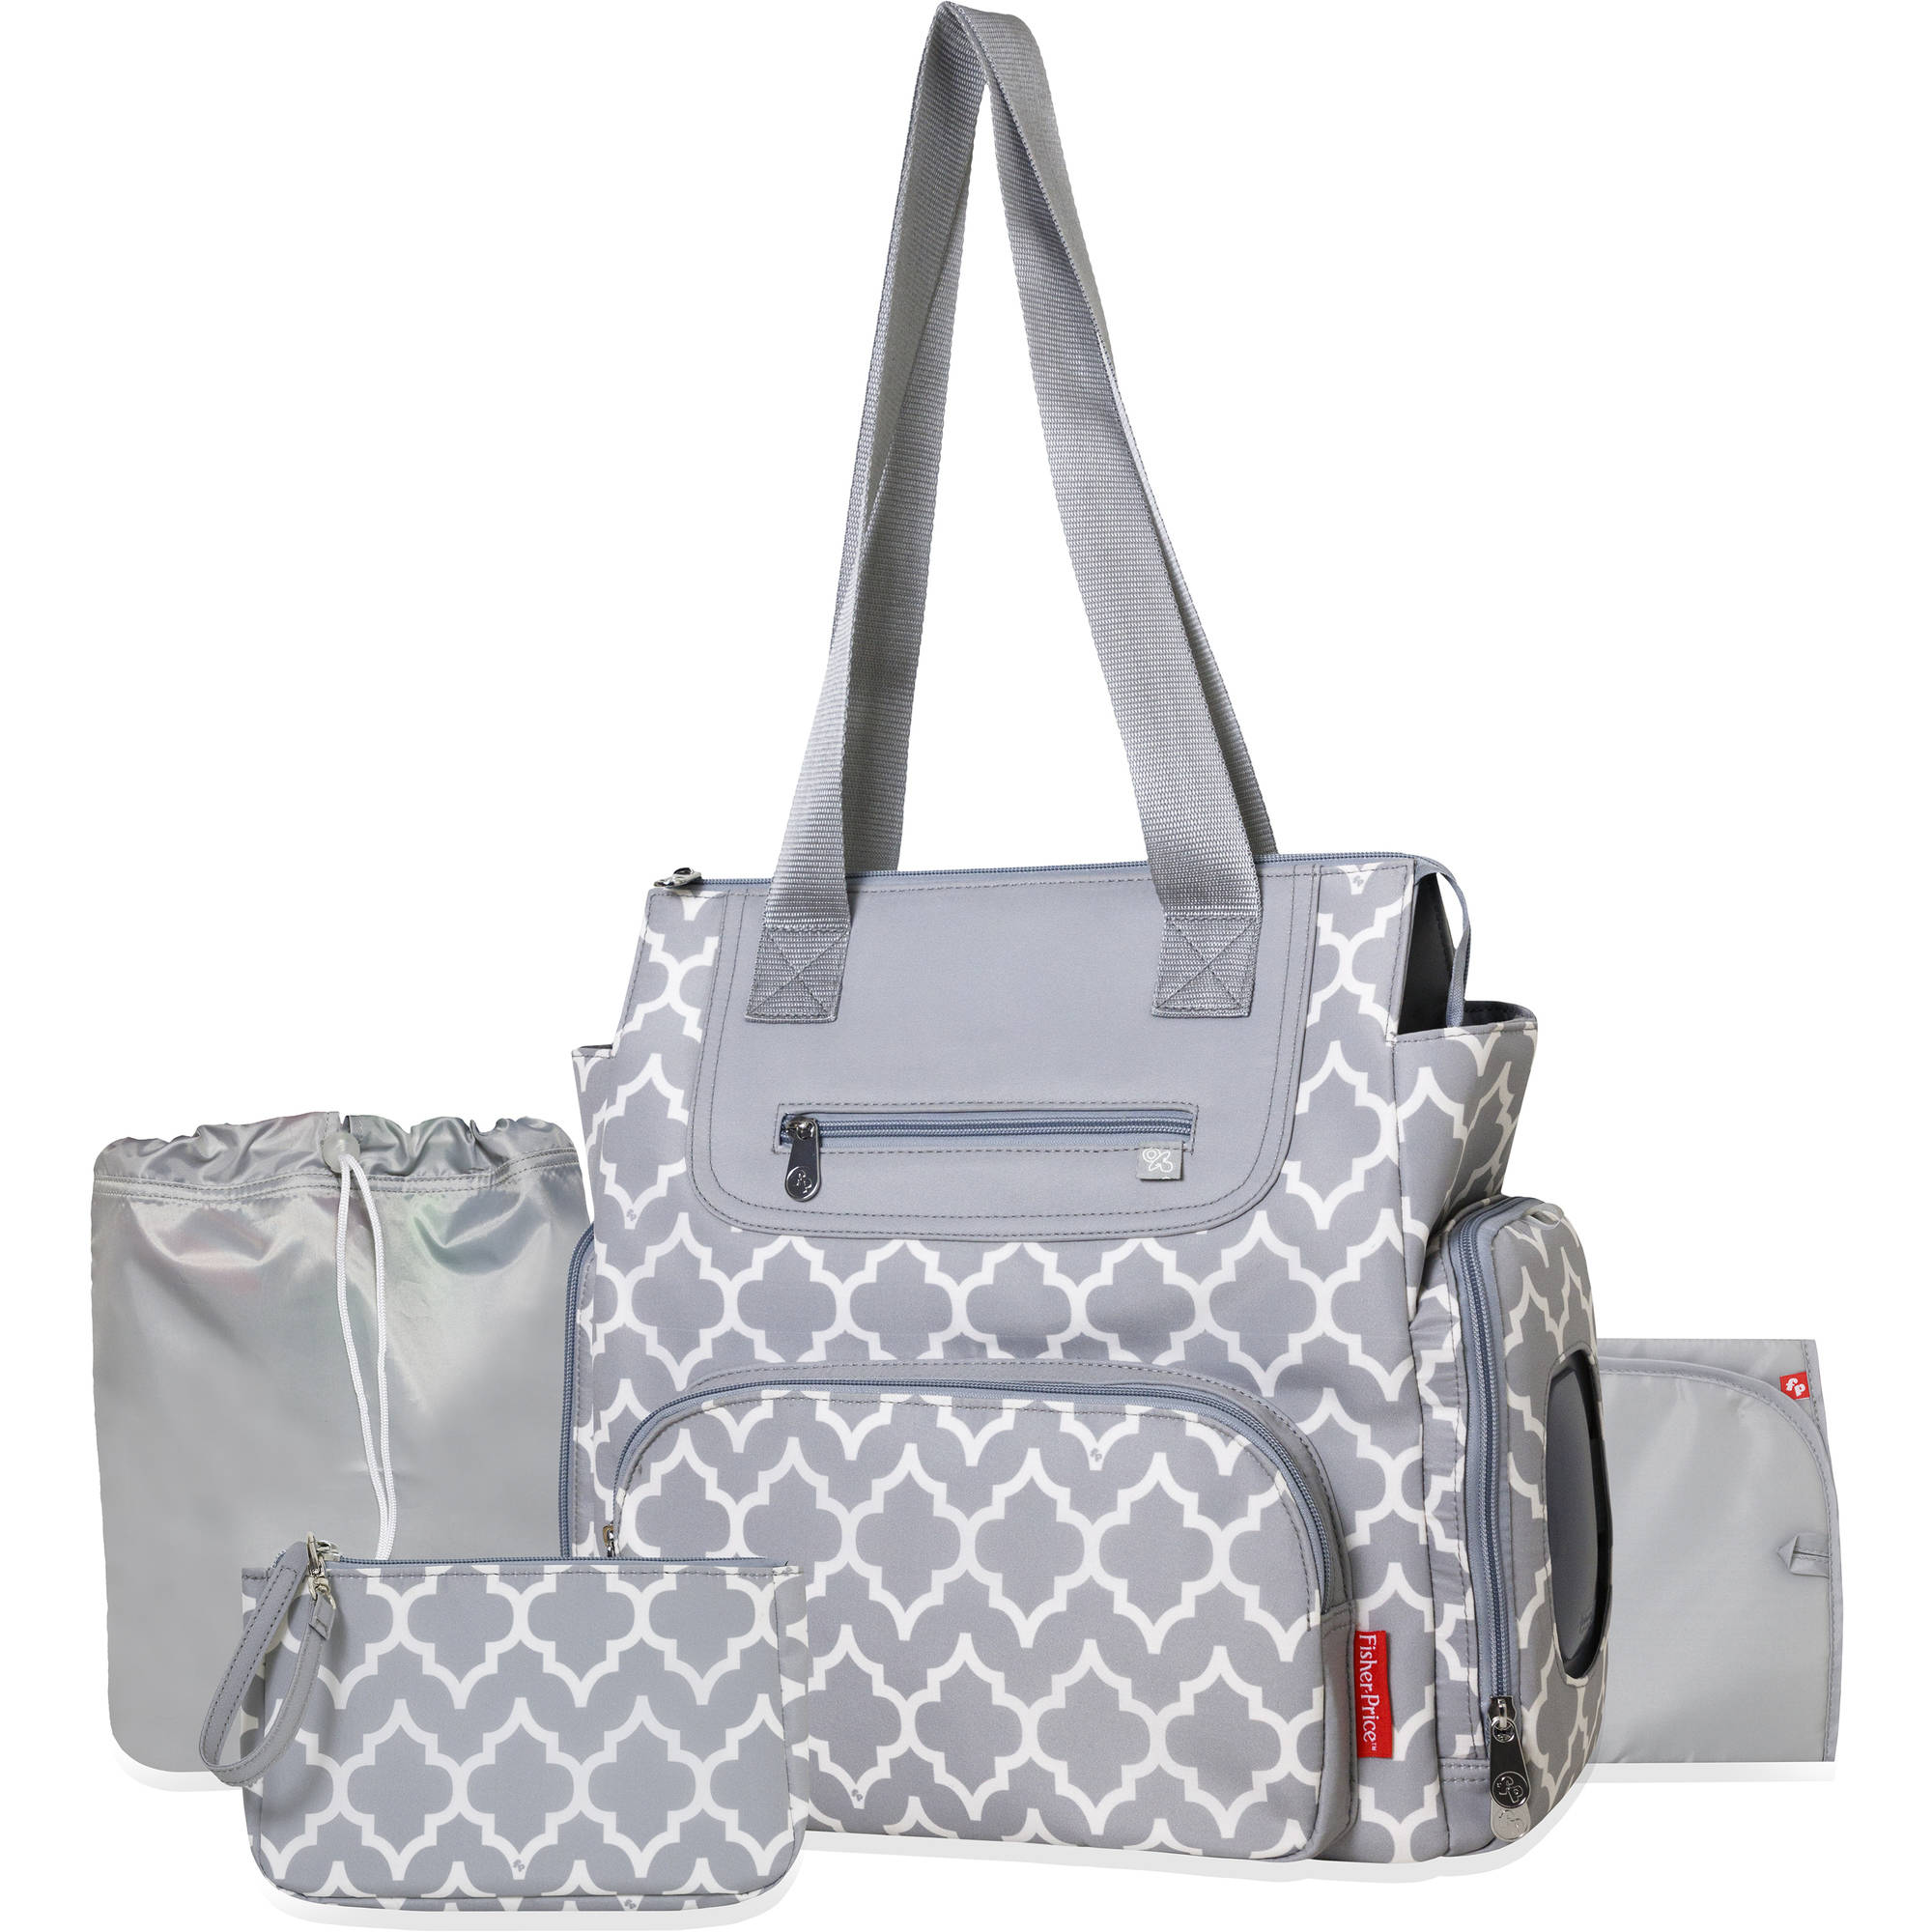 Fisher Price 5-Piece Stroller Tote, Gray Lattice